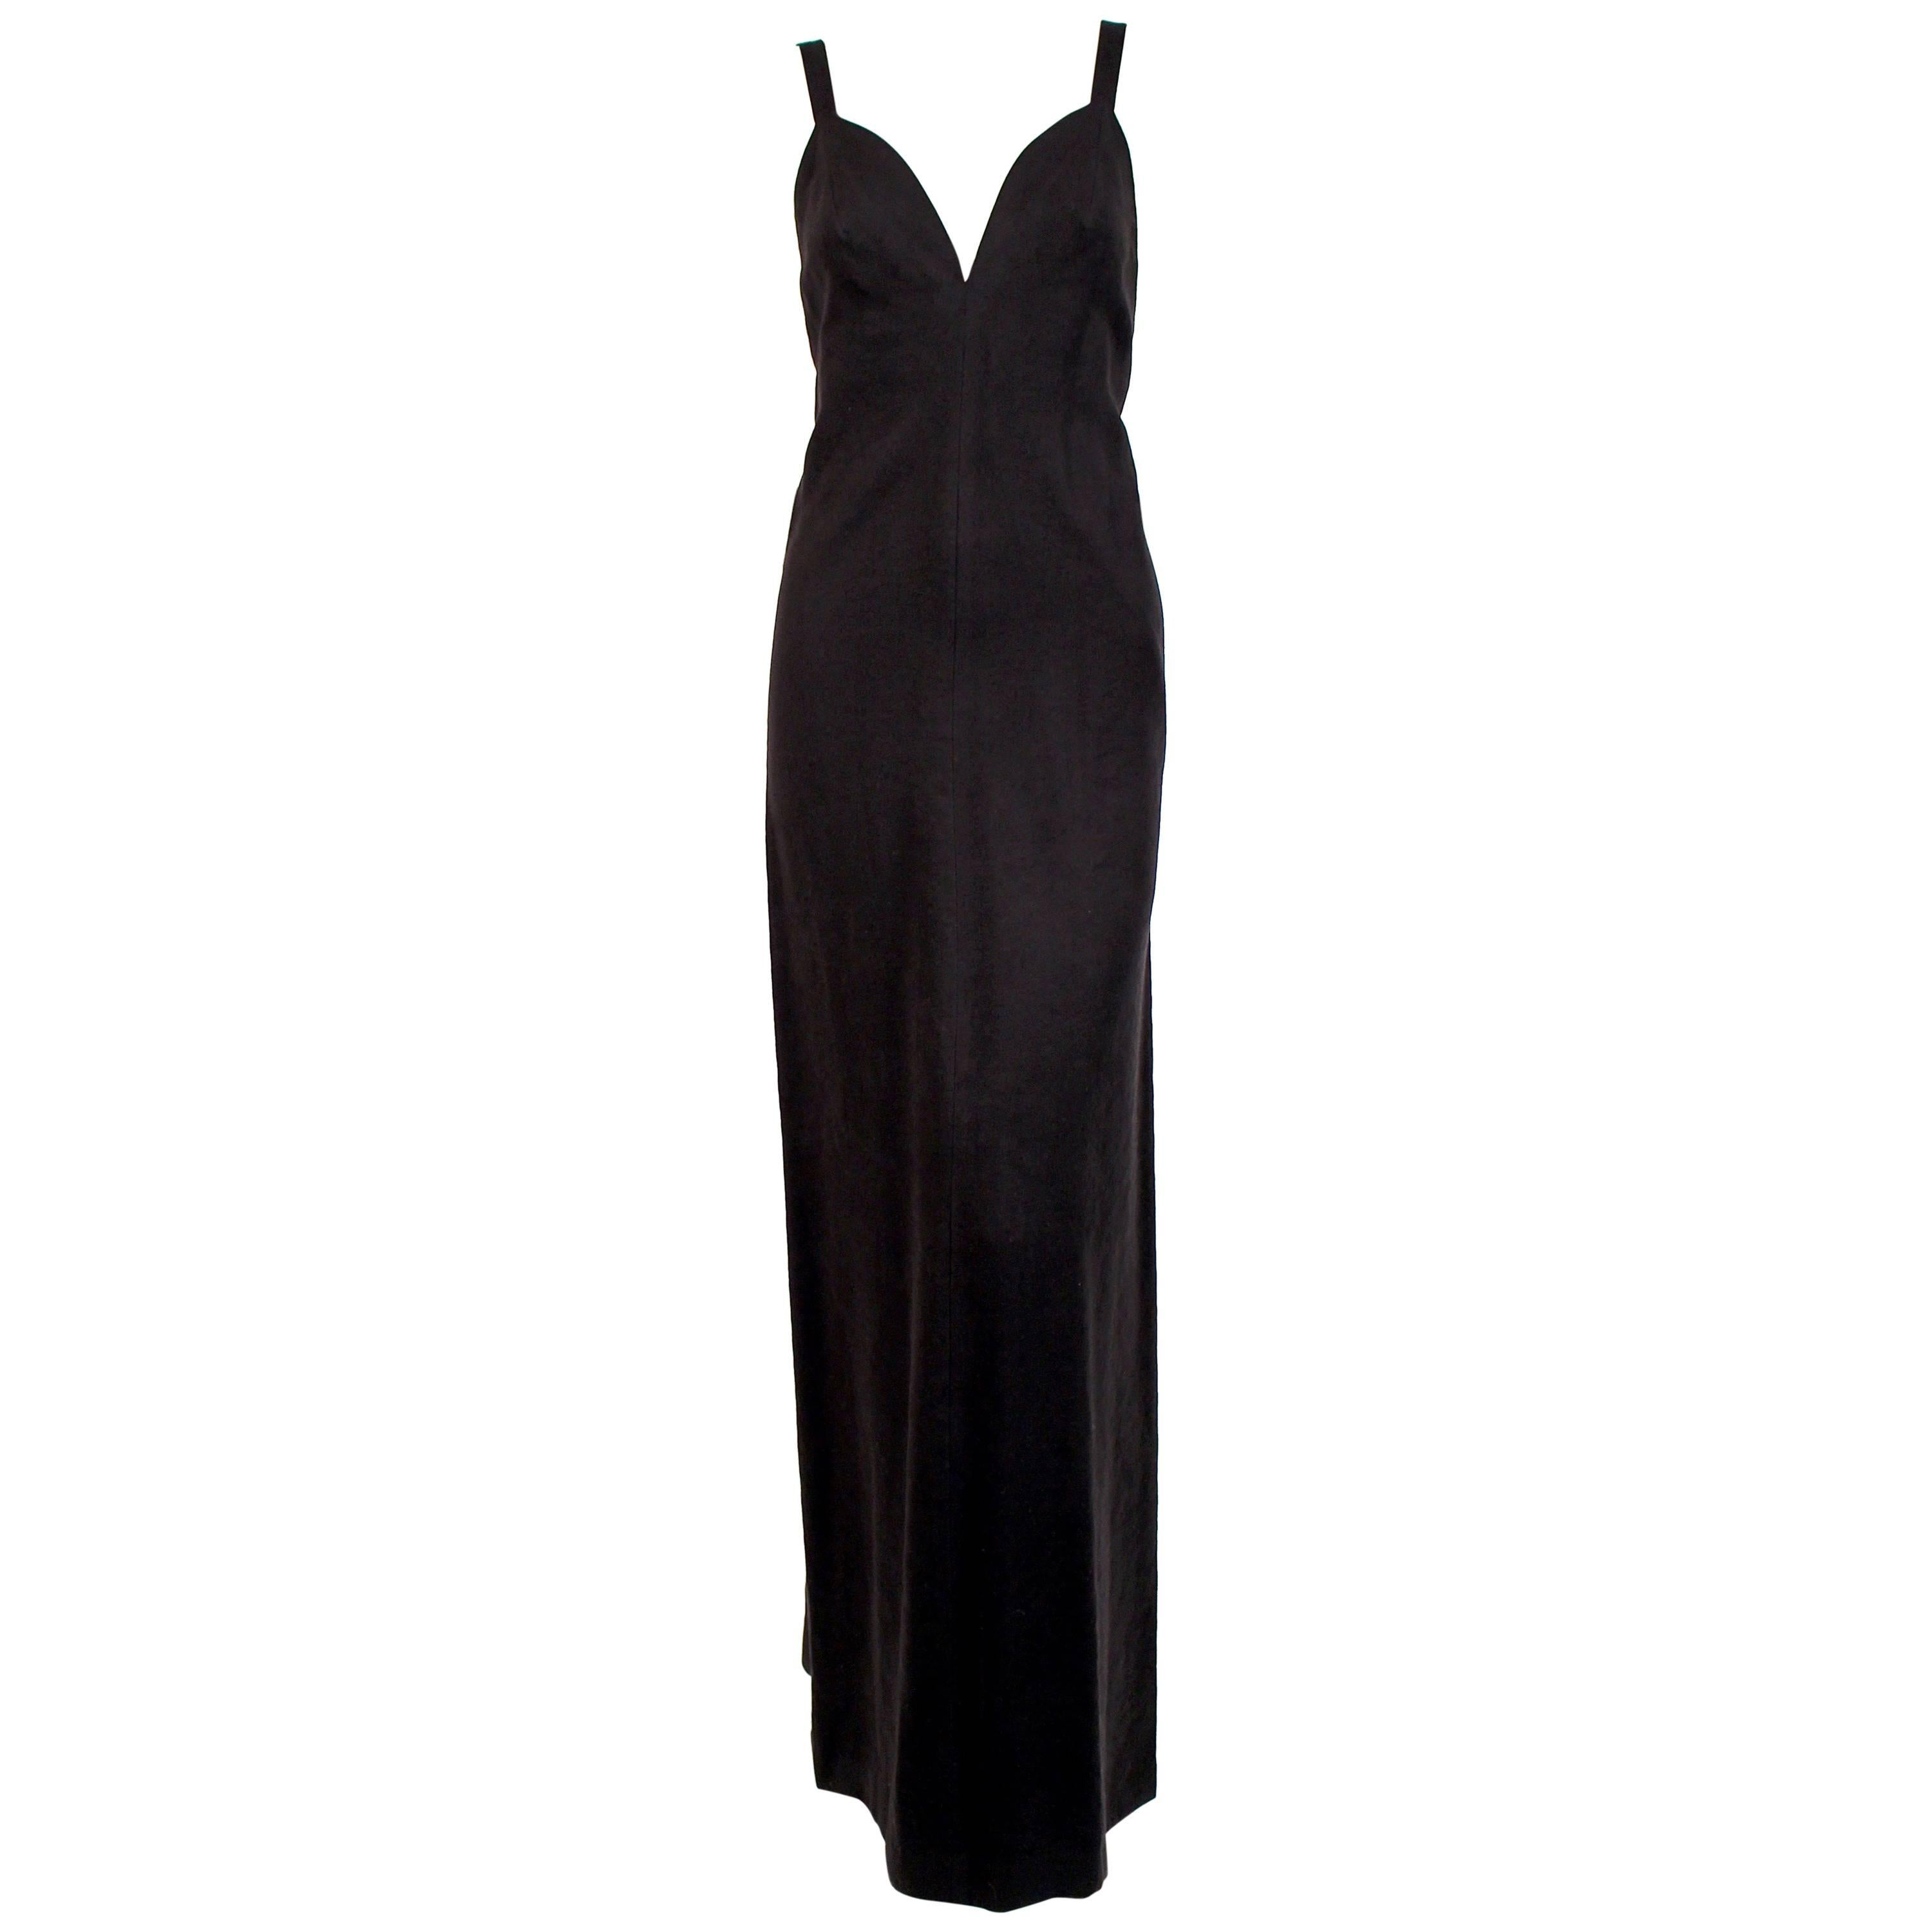 1970's ISSEY MIYAKE black ultrasuede gown with plunging neckline and low back